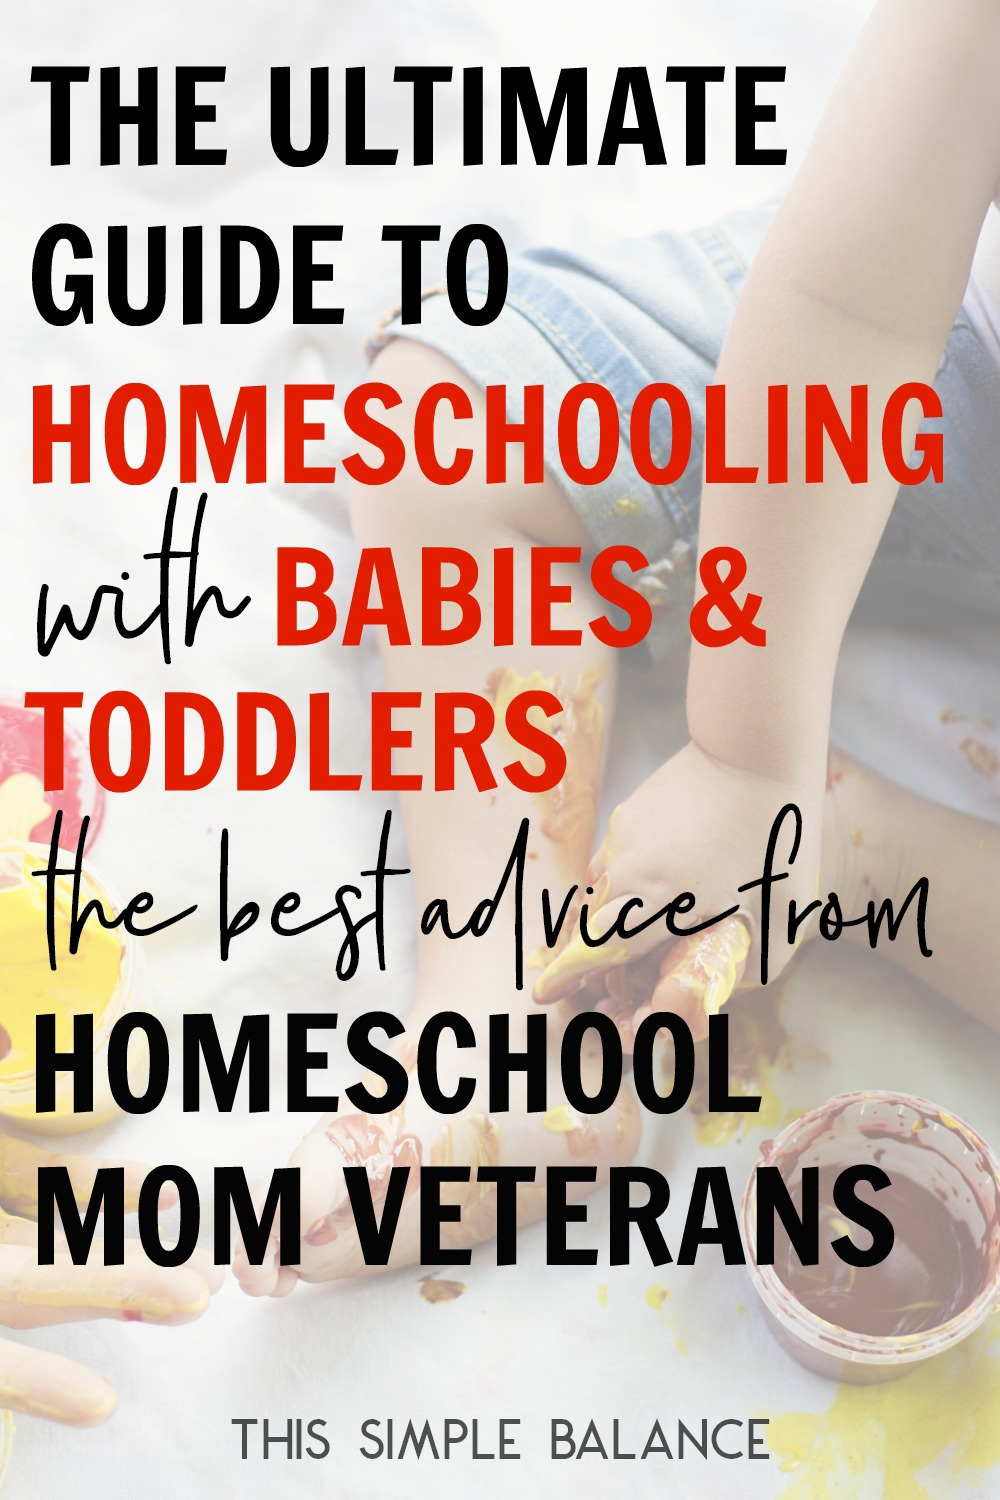 Homeschooling with babies and toddlers? It feels impossible (I know - I'm attempting to do this very thing right now!) but it CAN be done. Get the best tips from homeschool mom veterans for how to continue homeschooling, even with little ones.